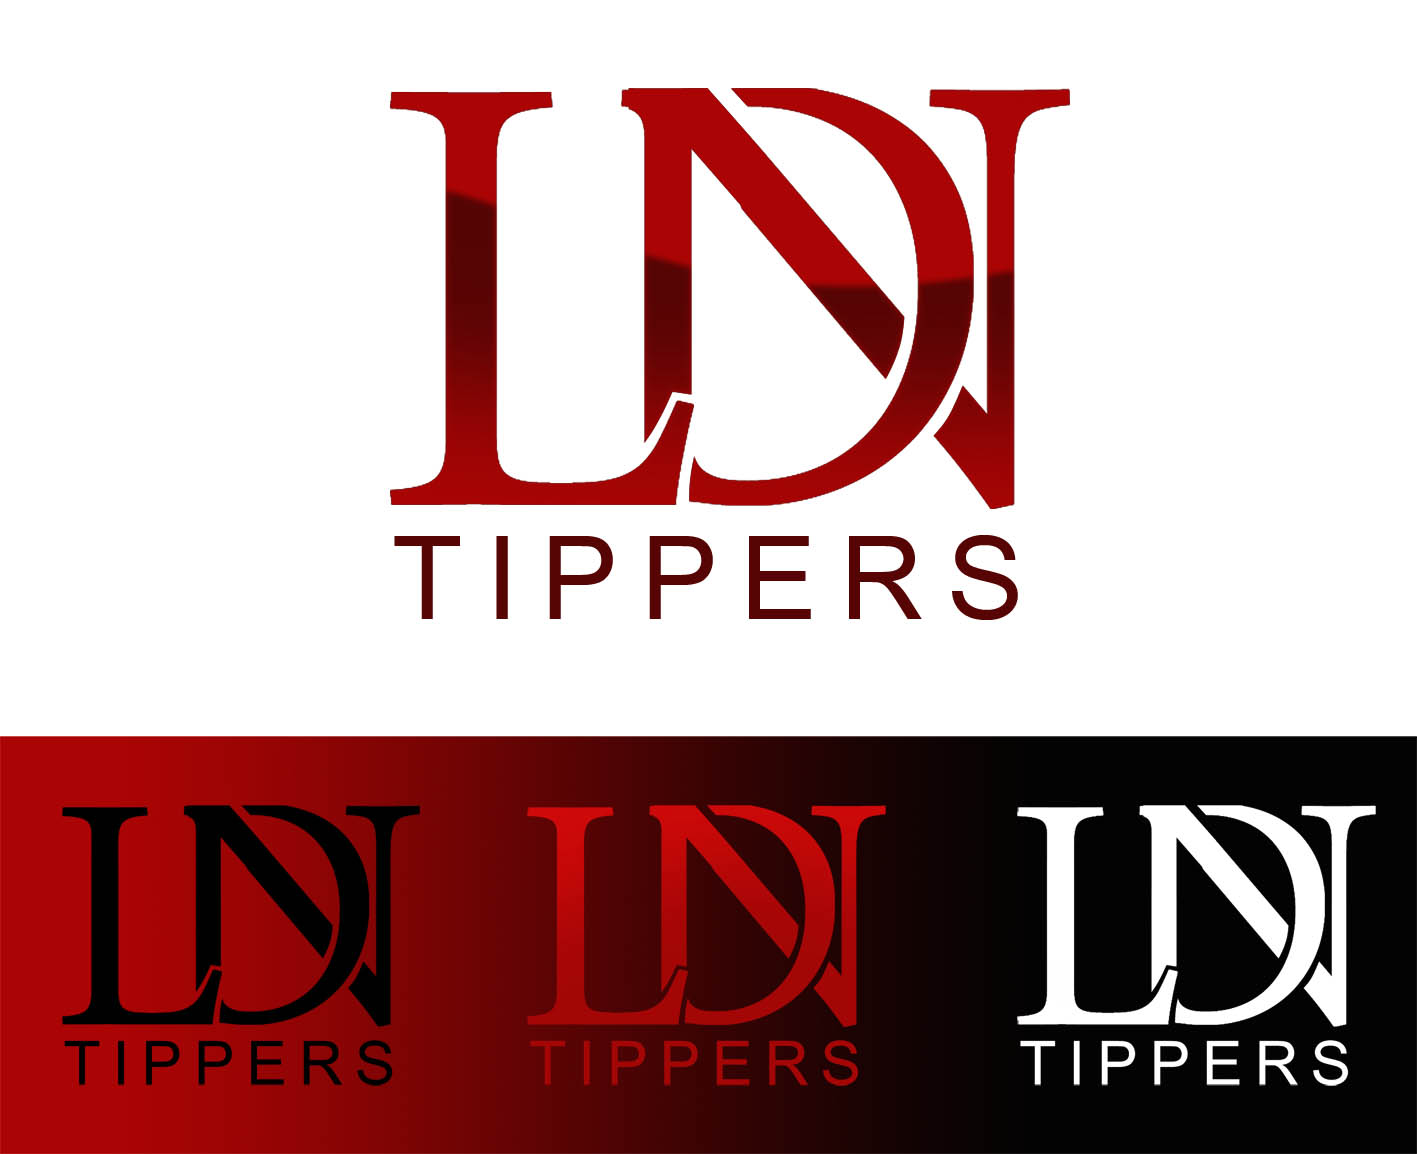 Serious, Personable, Clothing Logo Design for LDN TIPPERS or.